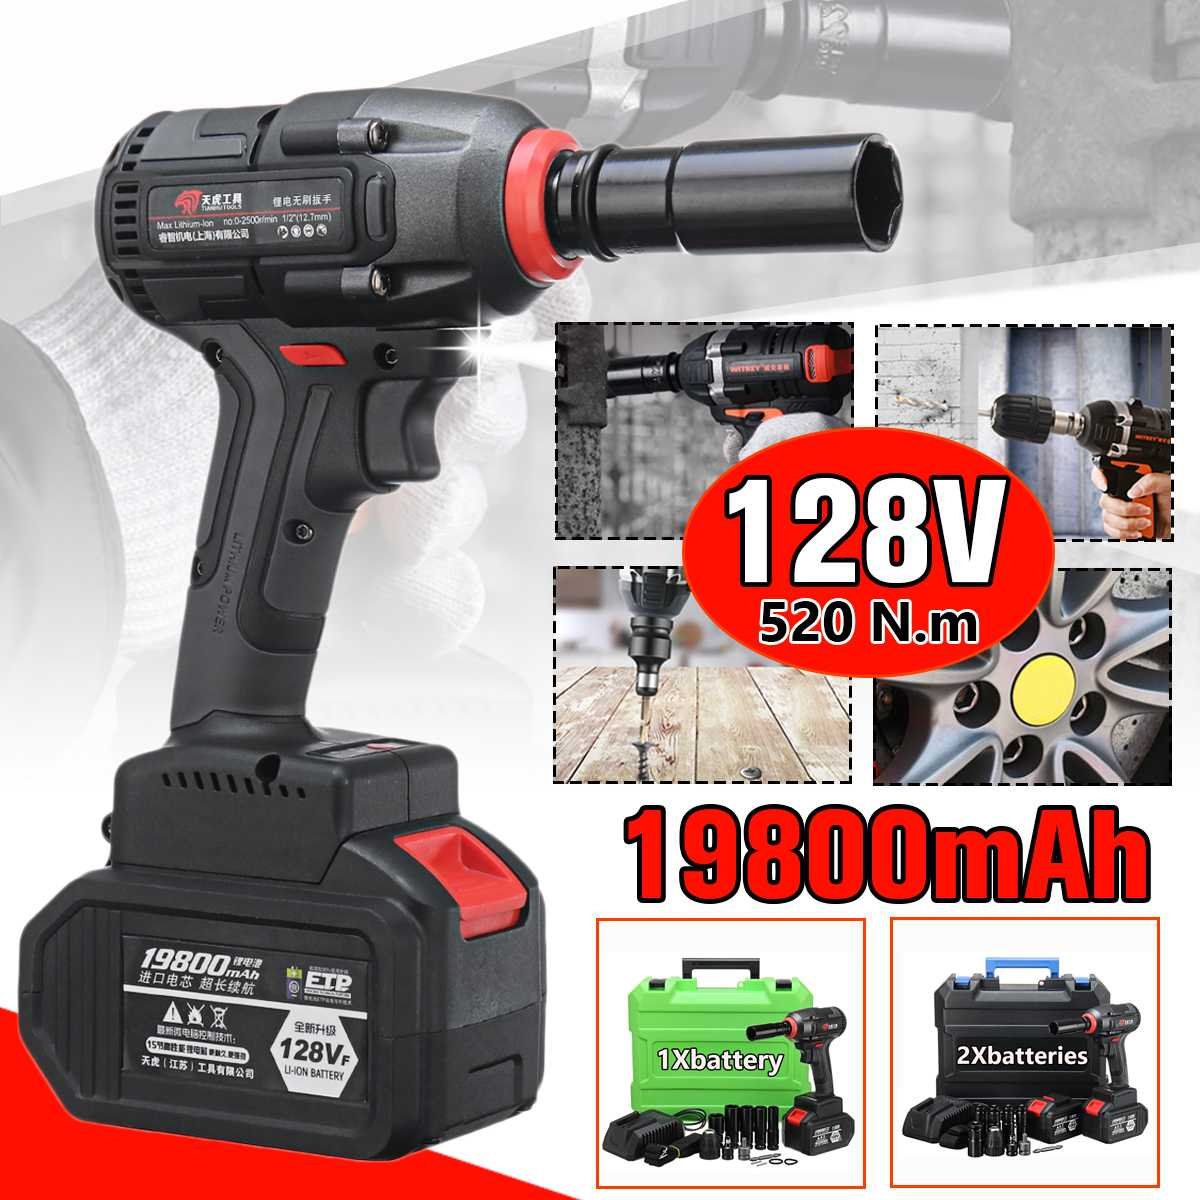 """128VF 19800mAh Brushless Cordless Impact Electric Wrench 520 N.m Torque 1/2"""" Socket Wrench Power Tool for Household Car Wheel"""